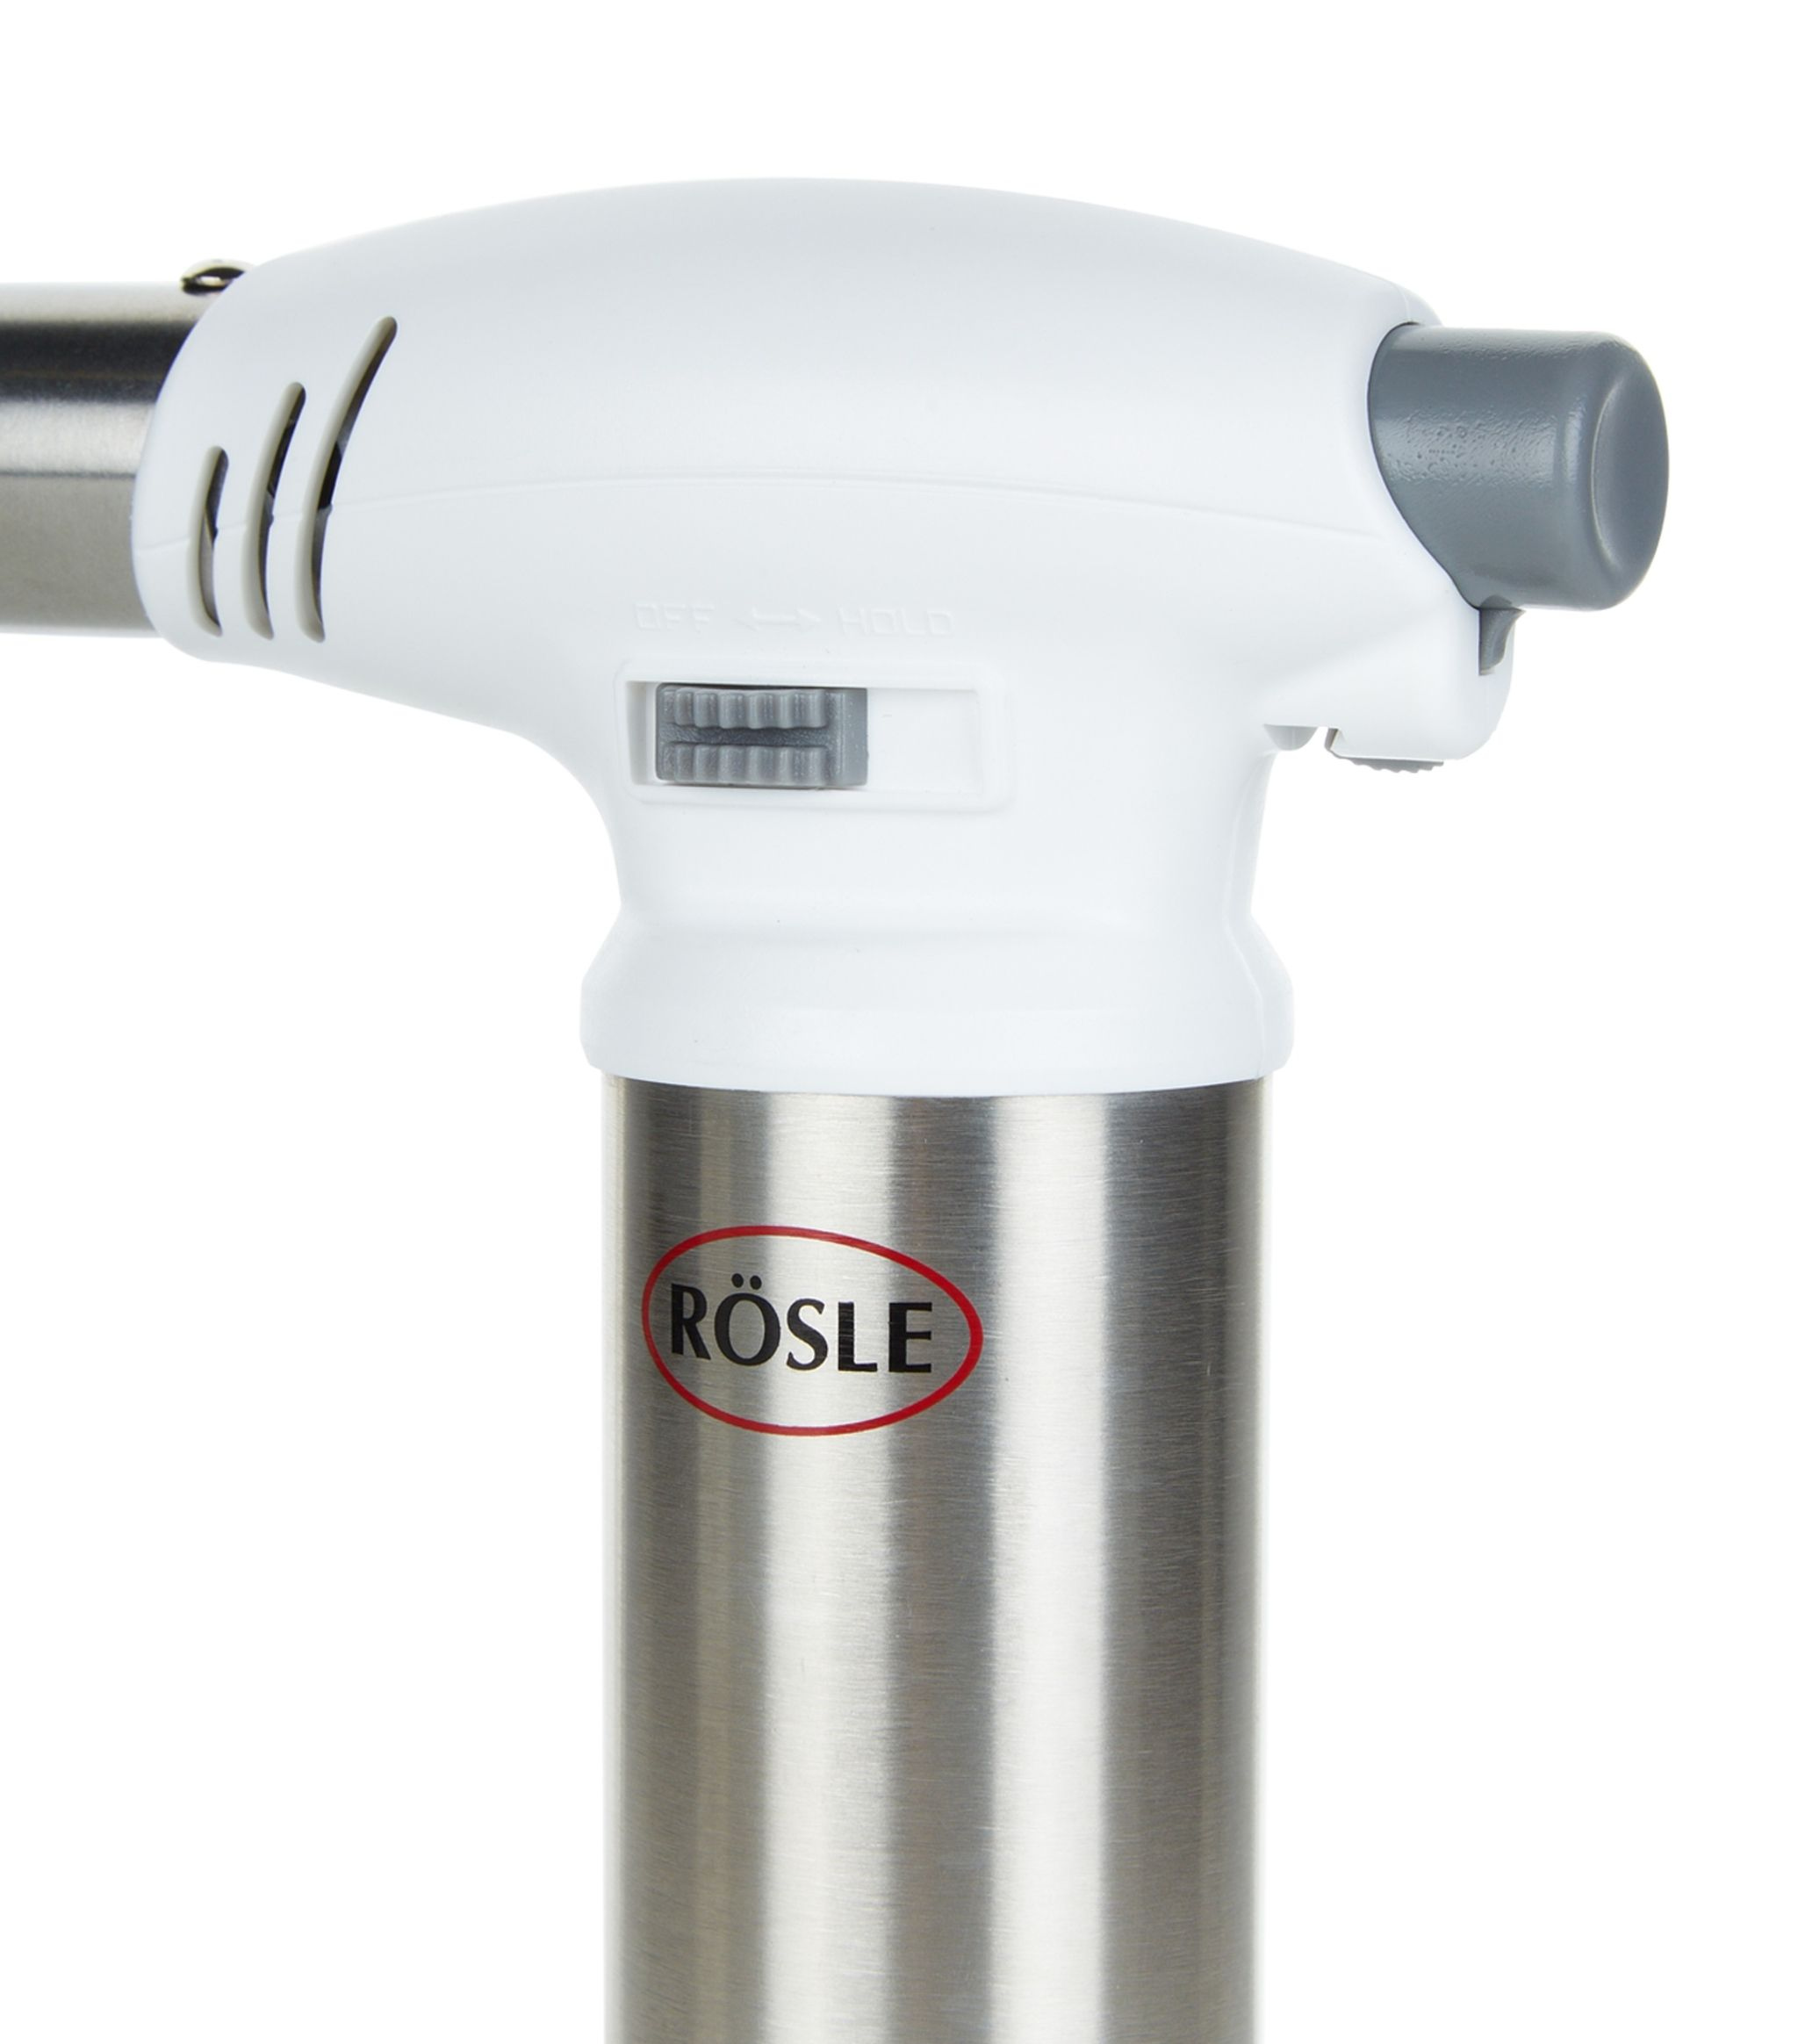 You can now prepare amazing desserts like the crème brûlée at home by using the rosle kitchen torch. Rösle Kitchen Torch   Harrods US